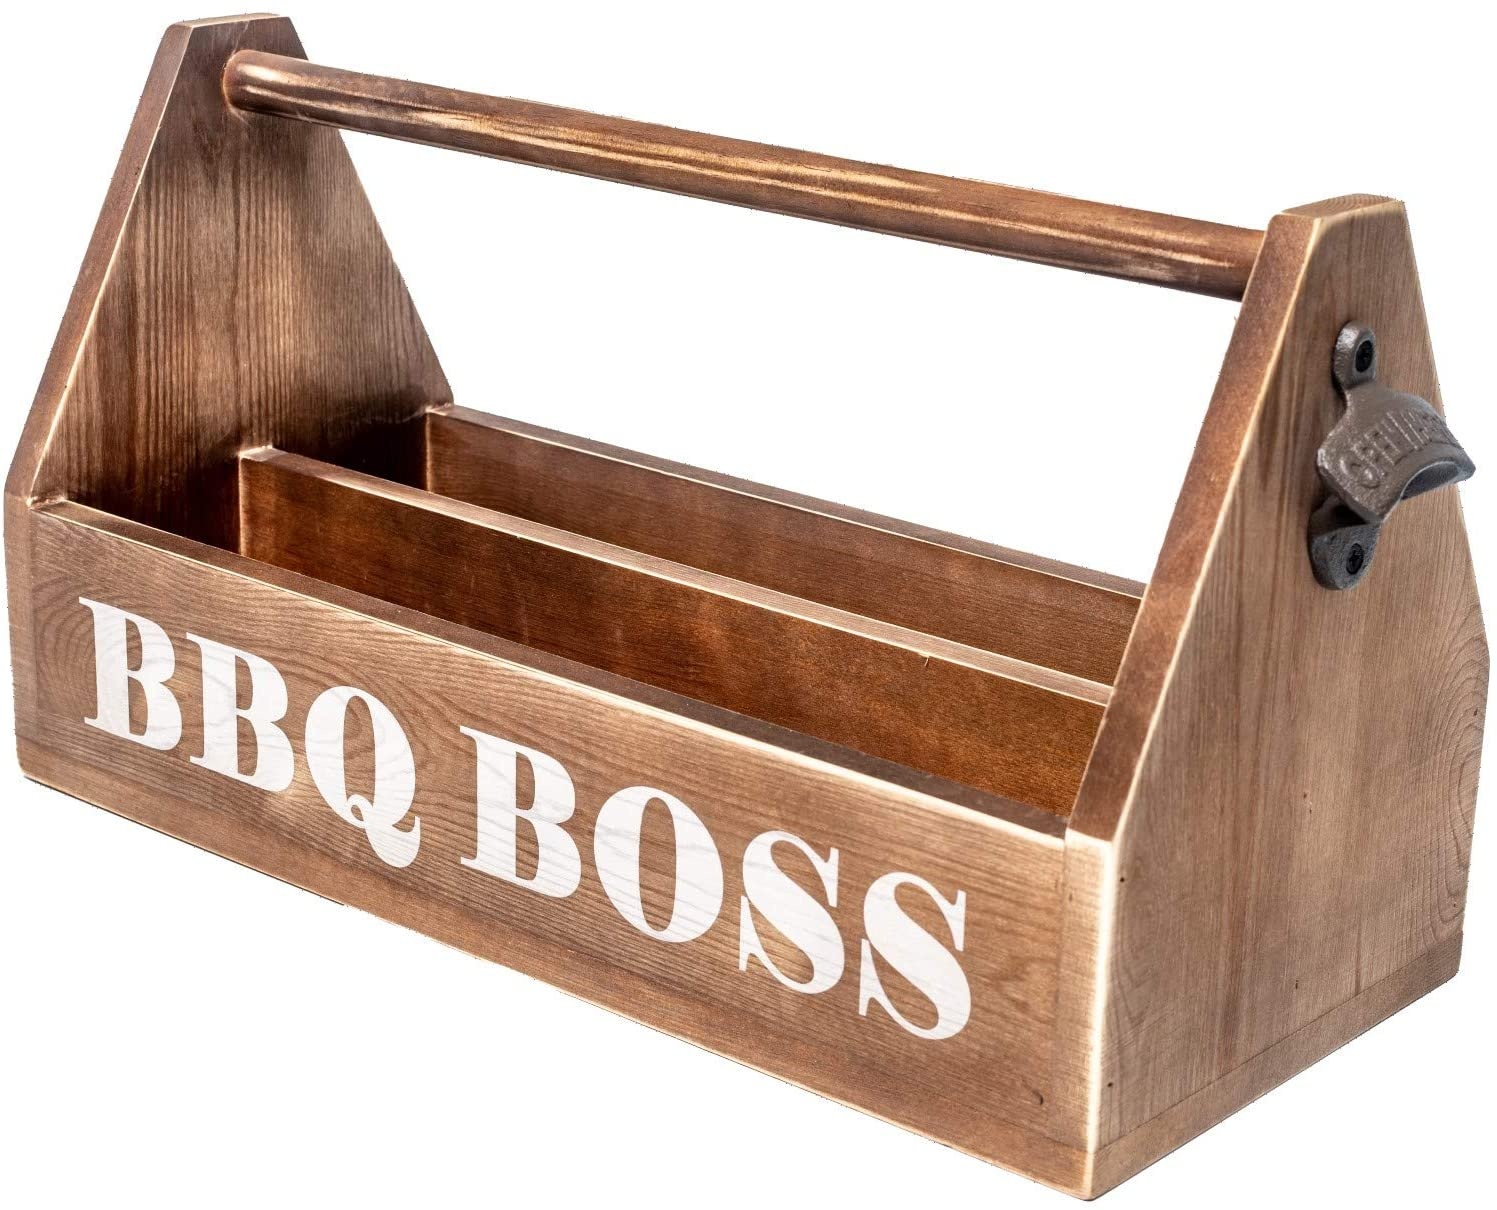 RJ's Farmhouse Decor BBQ Caddy - Handcrafted Grill Caddy with Bottle Opener, Organize BBQ Grill & Grilling Accessories, Condiment Caddy BBQ, Gifts for Men, Dad Gifts, BBQ Utensil Holder